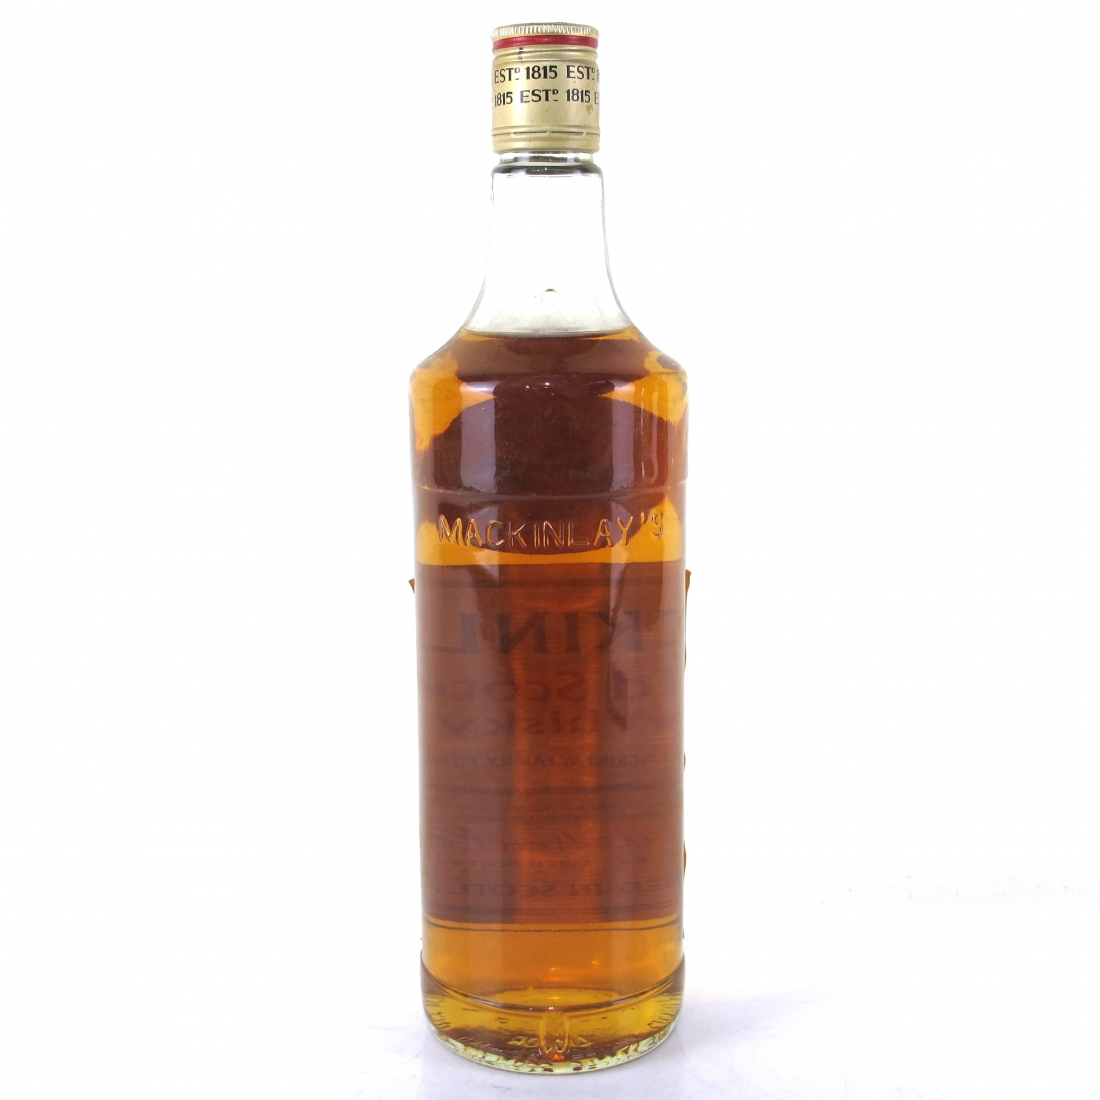 Mackinlay's Old Scotch Whisky 1980s